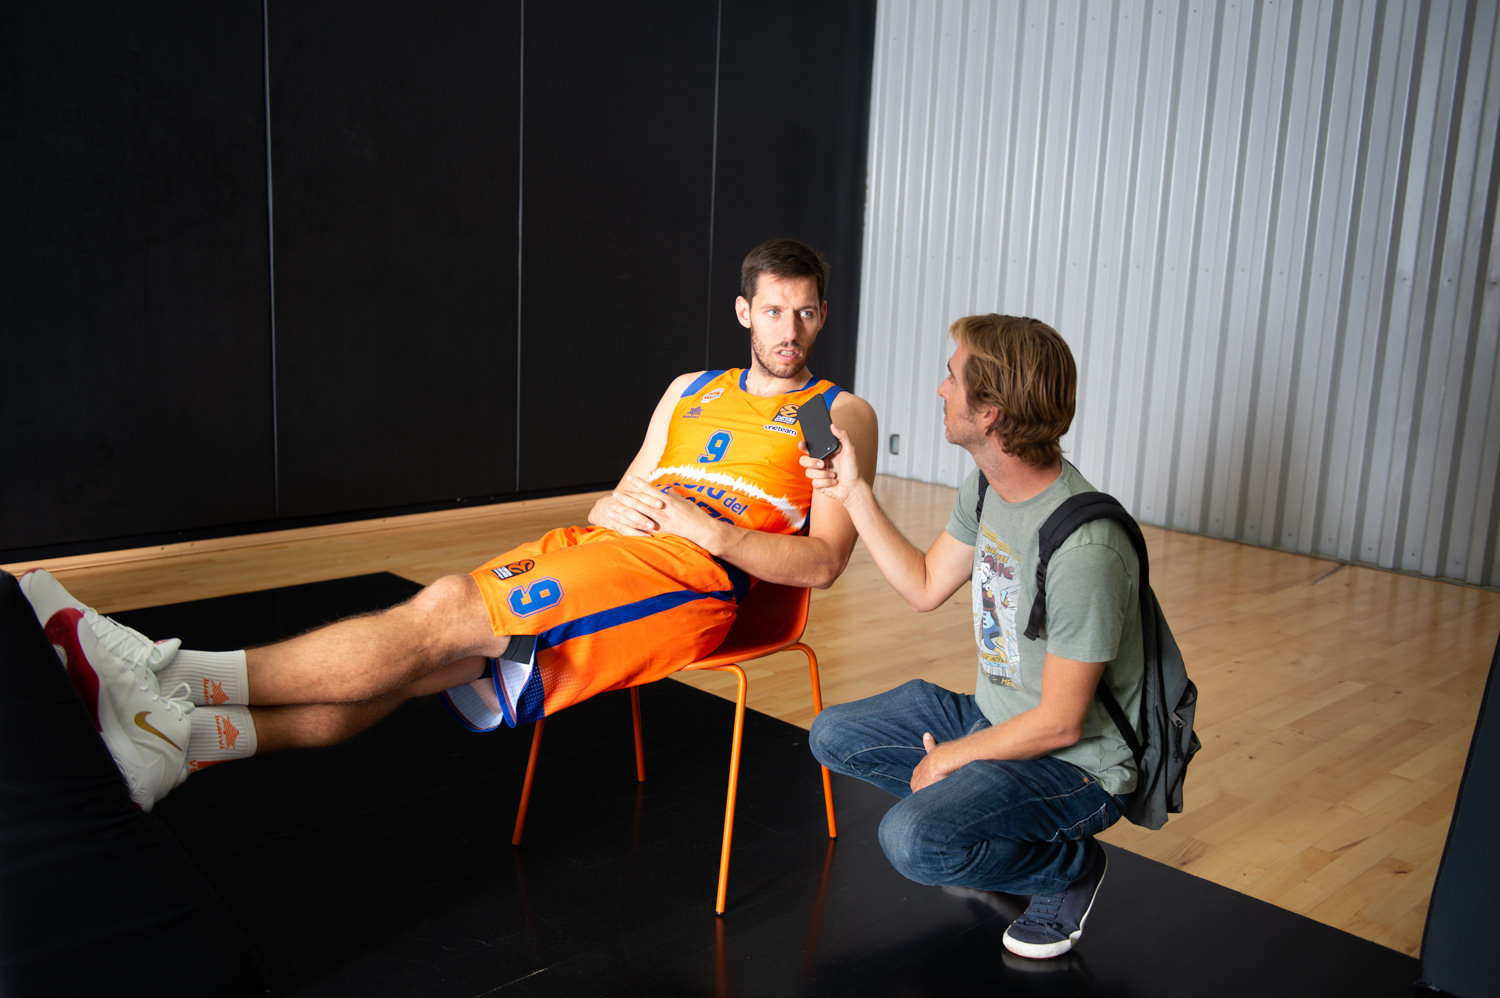 Sam Van Rossom - Valencia Basket Media Day 2019 - EB19